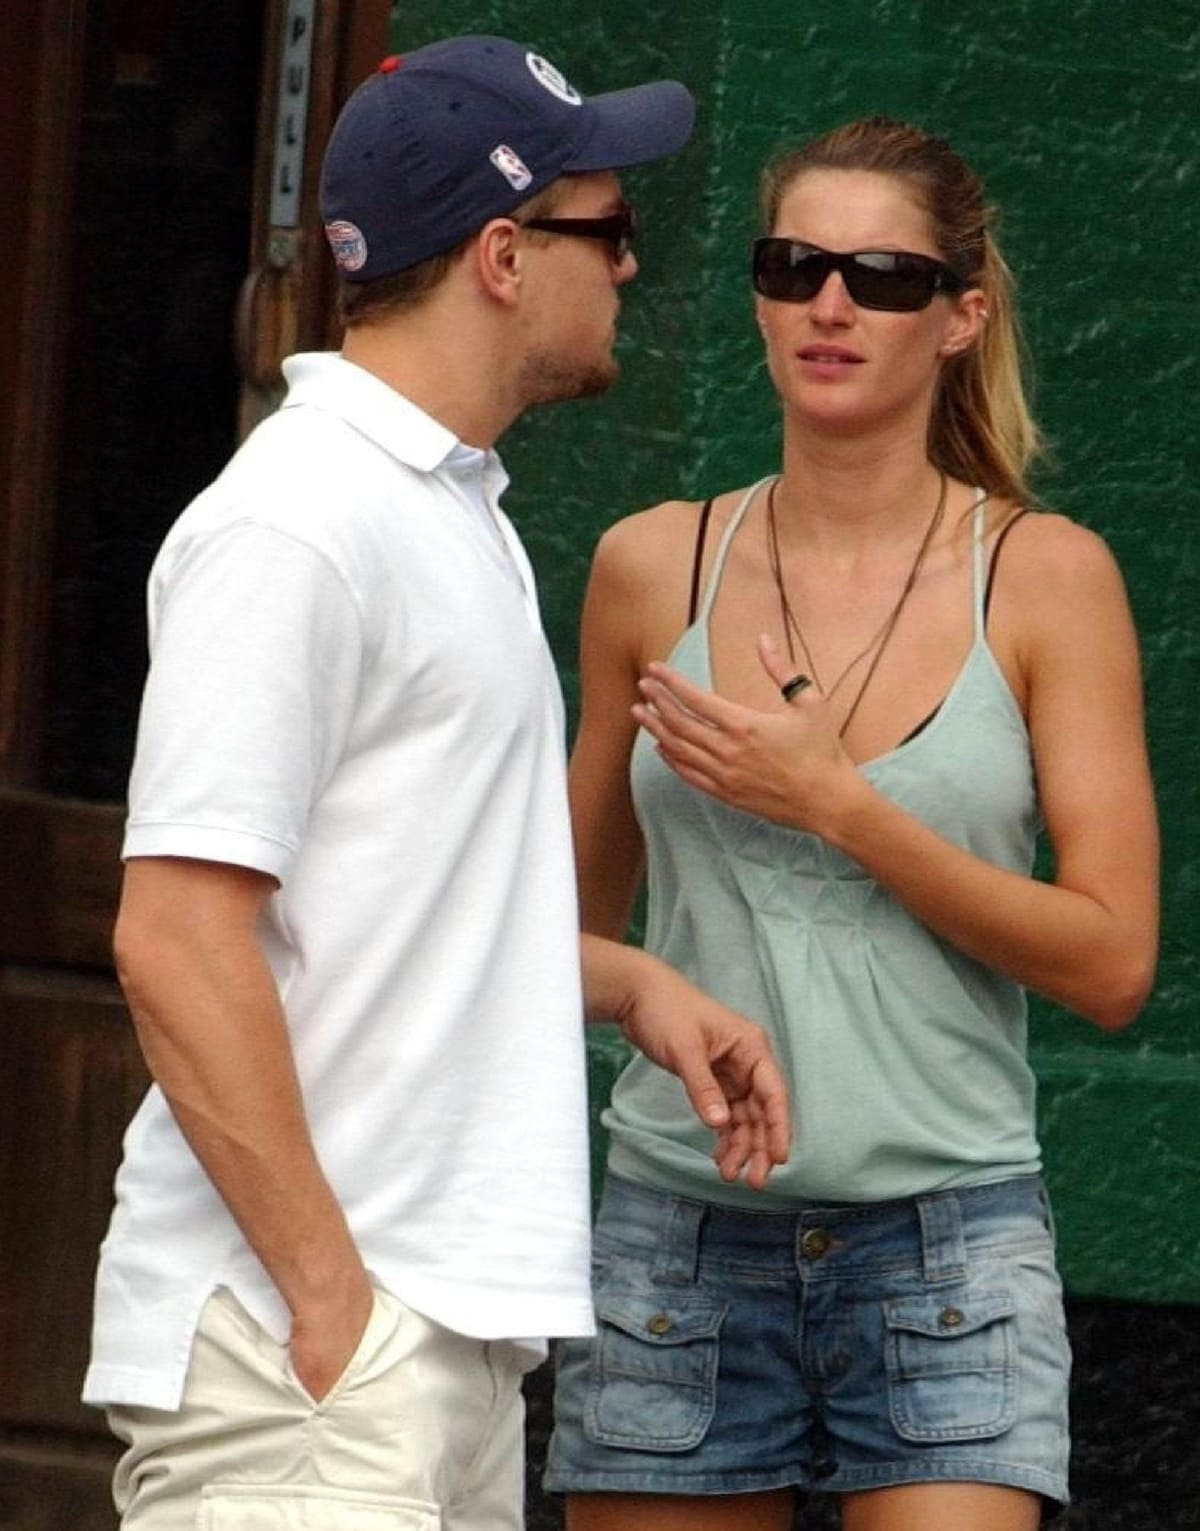 Gisele Bündchen broke up with Leonardo DiCaprio in 2005 when she realized he wasn't right for her